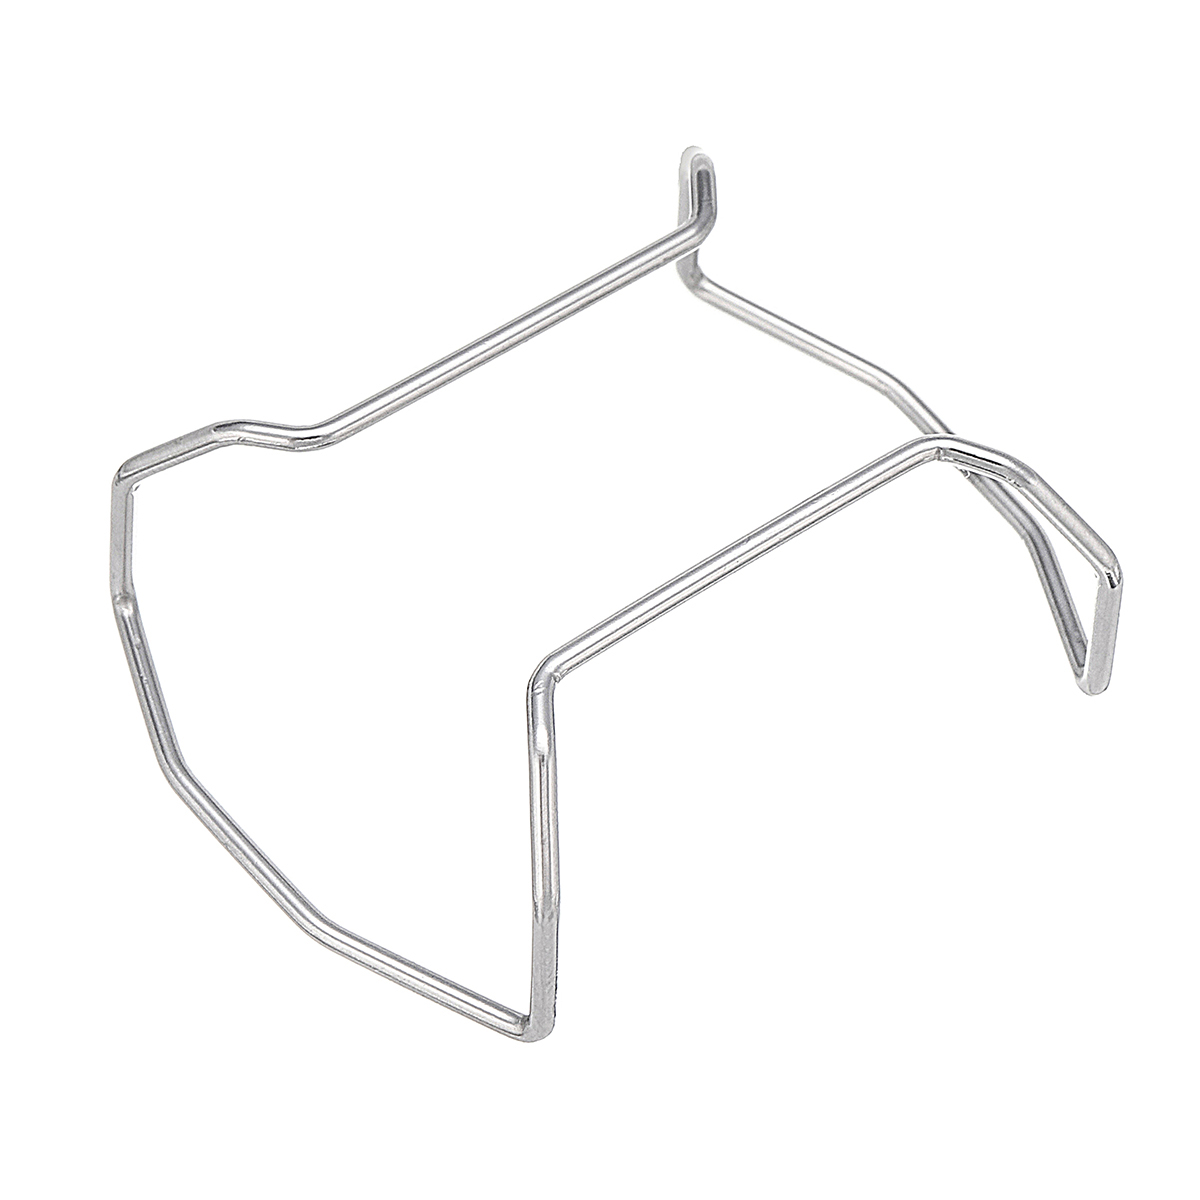 Protector Wire Guards For G Shock Gx56 Dw Gw Ga110